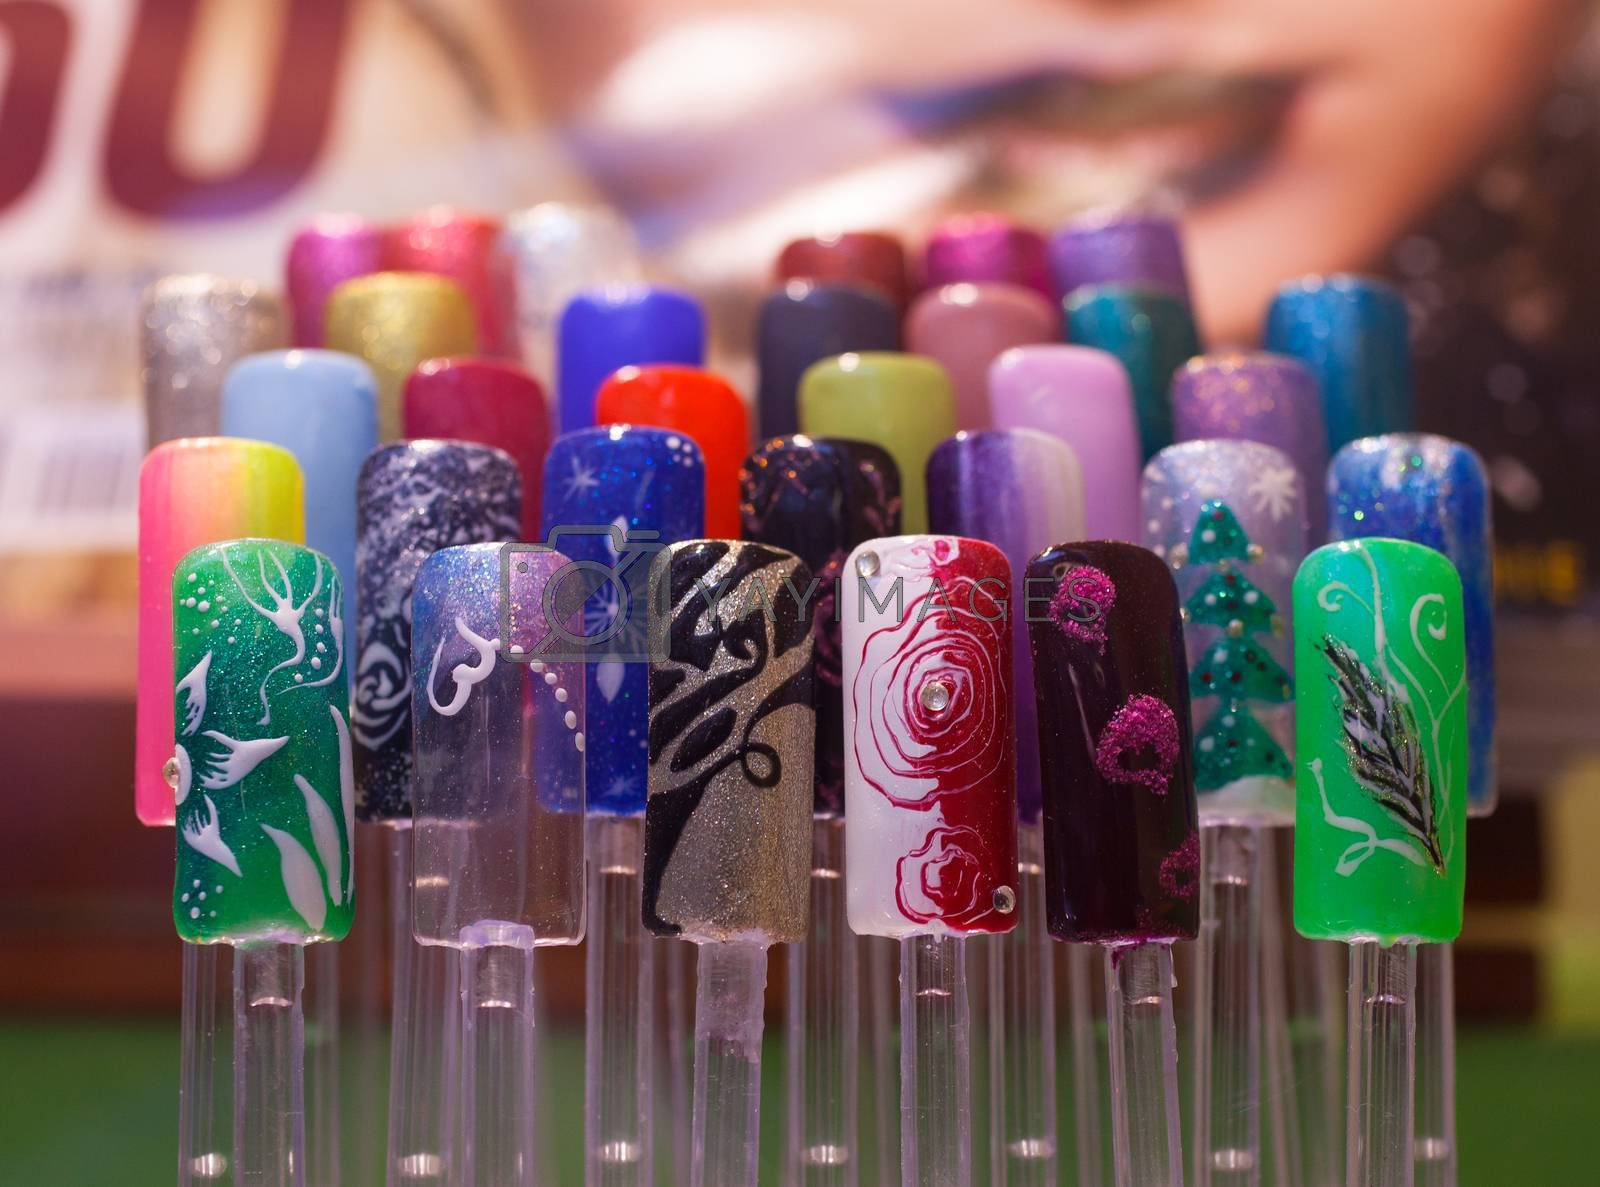 View of many decorated fake nails